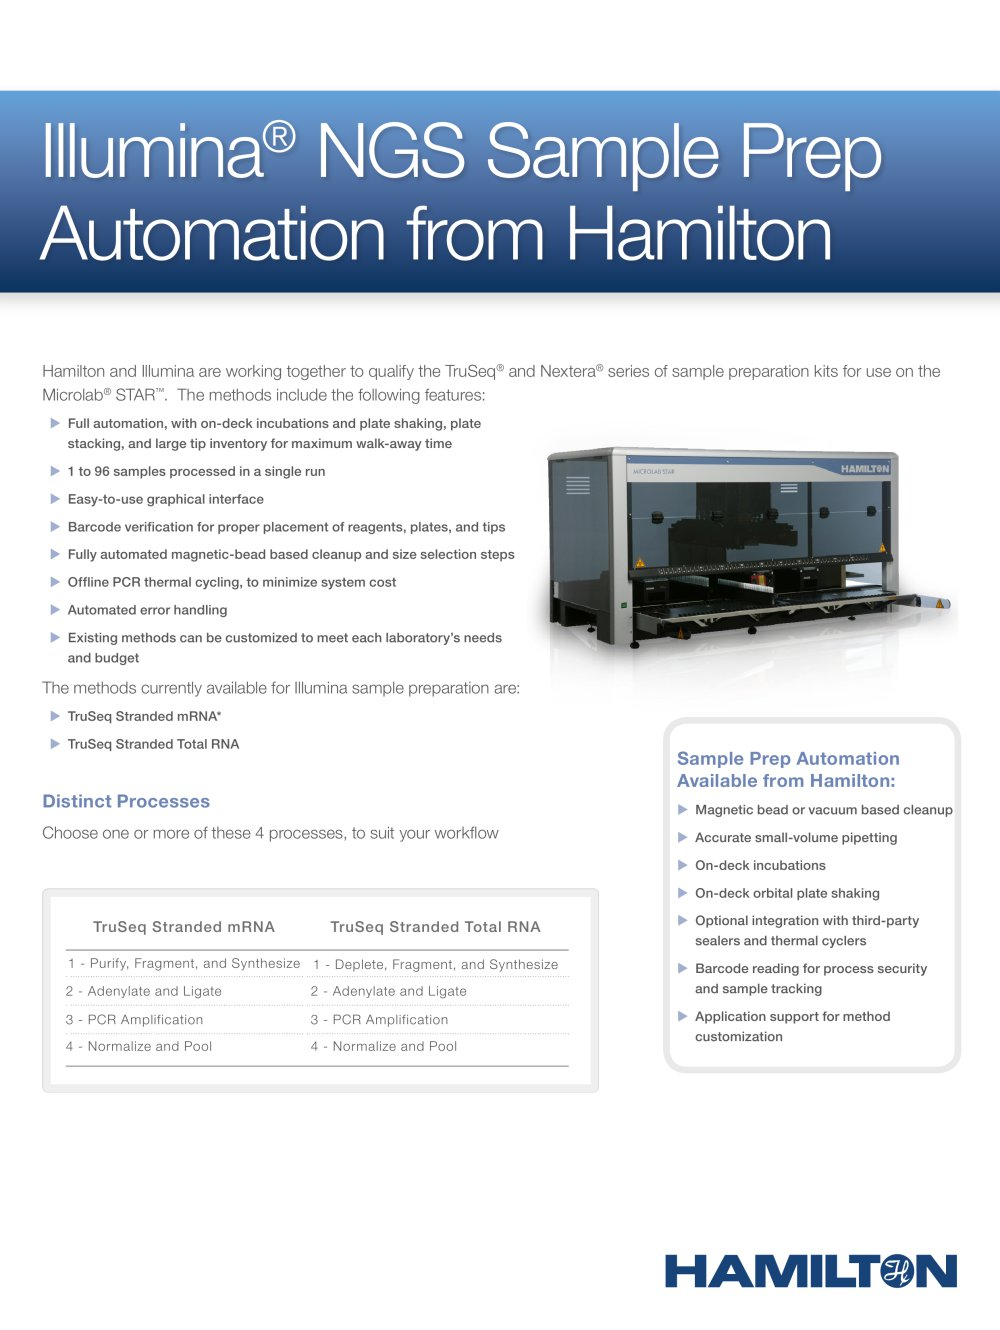 Illumina Ngs Sample Prep Automation From Hamilton - 1 / 4 Pages